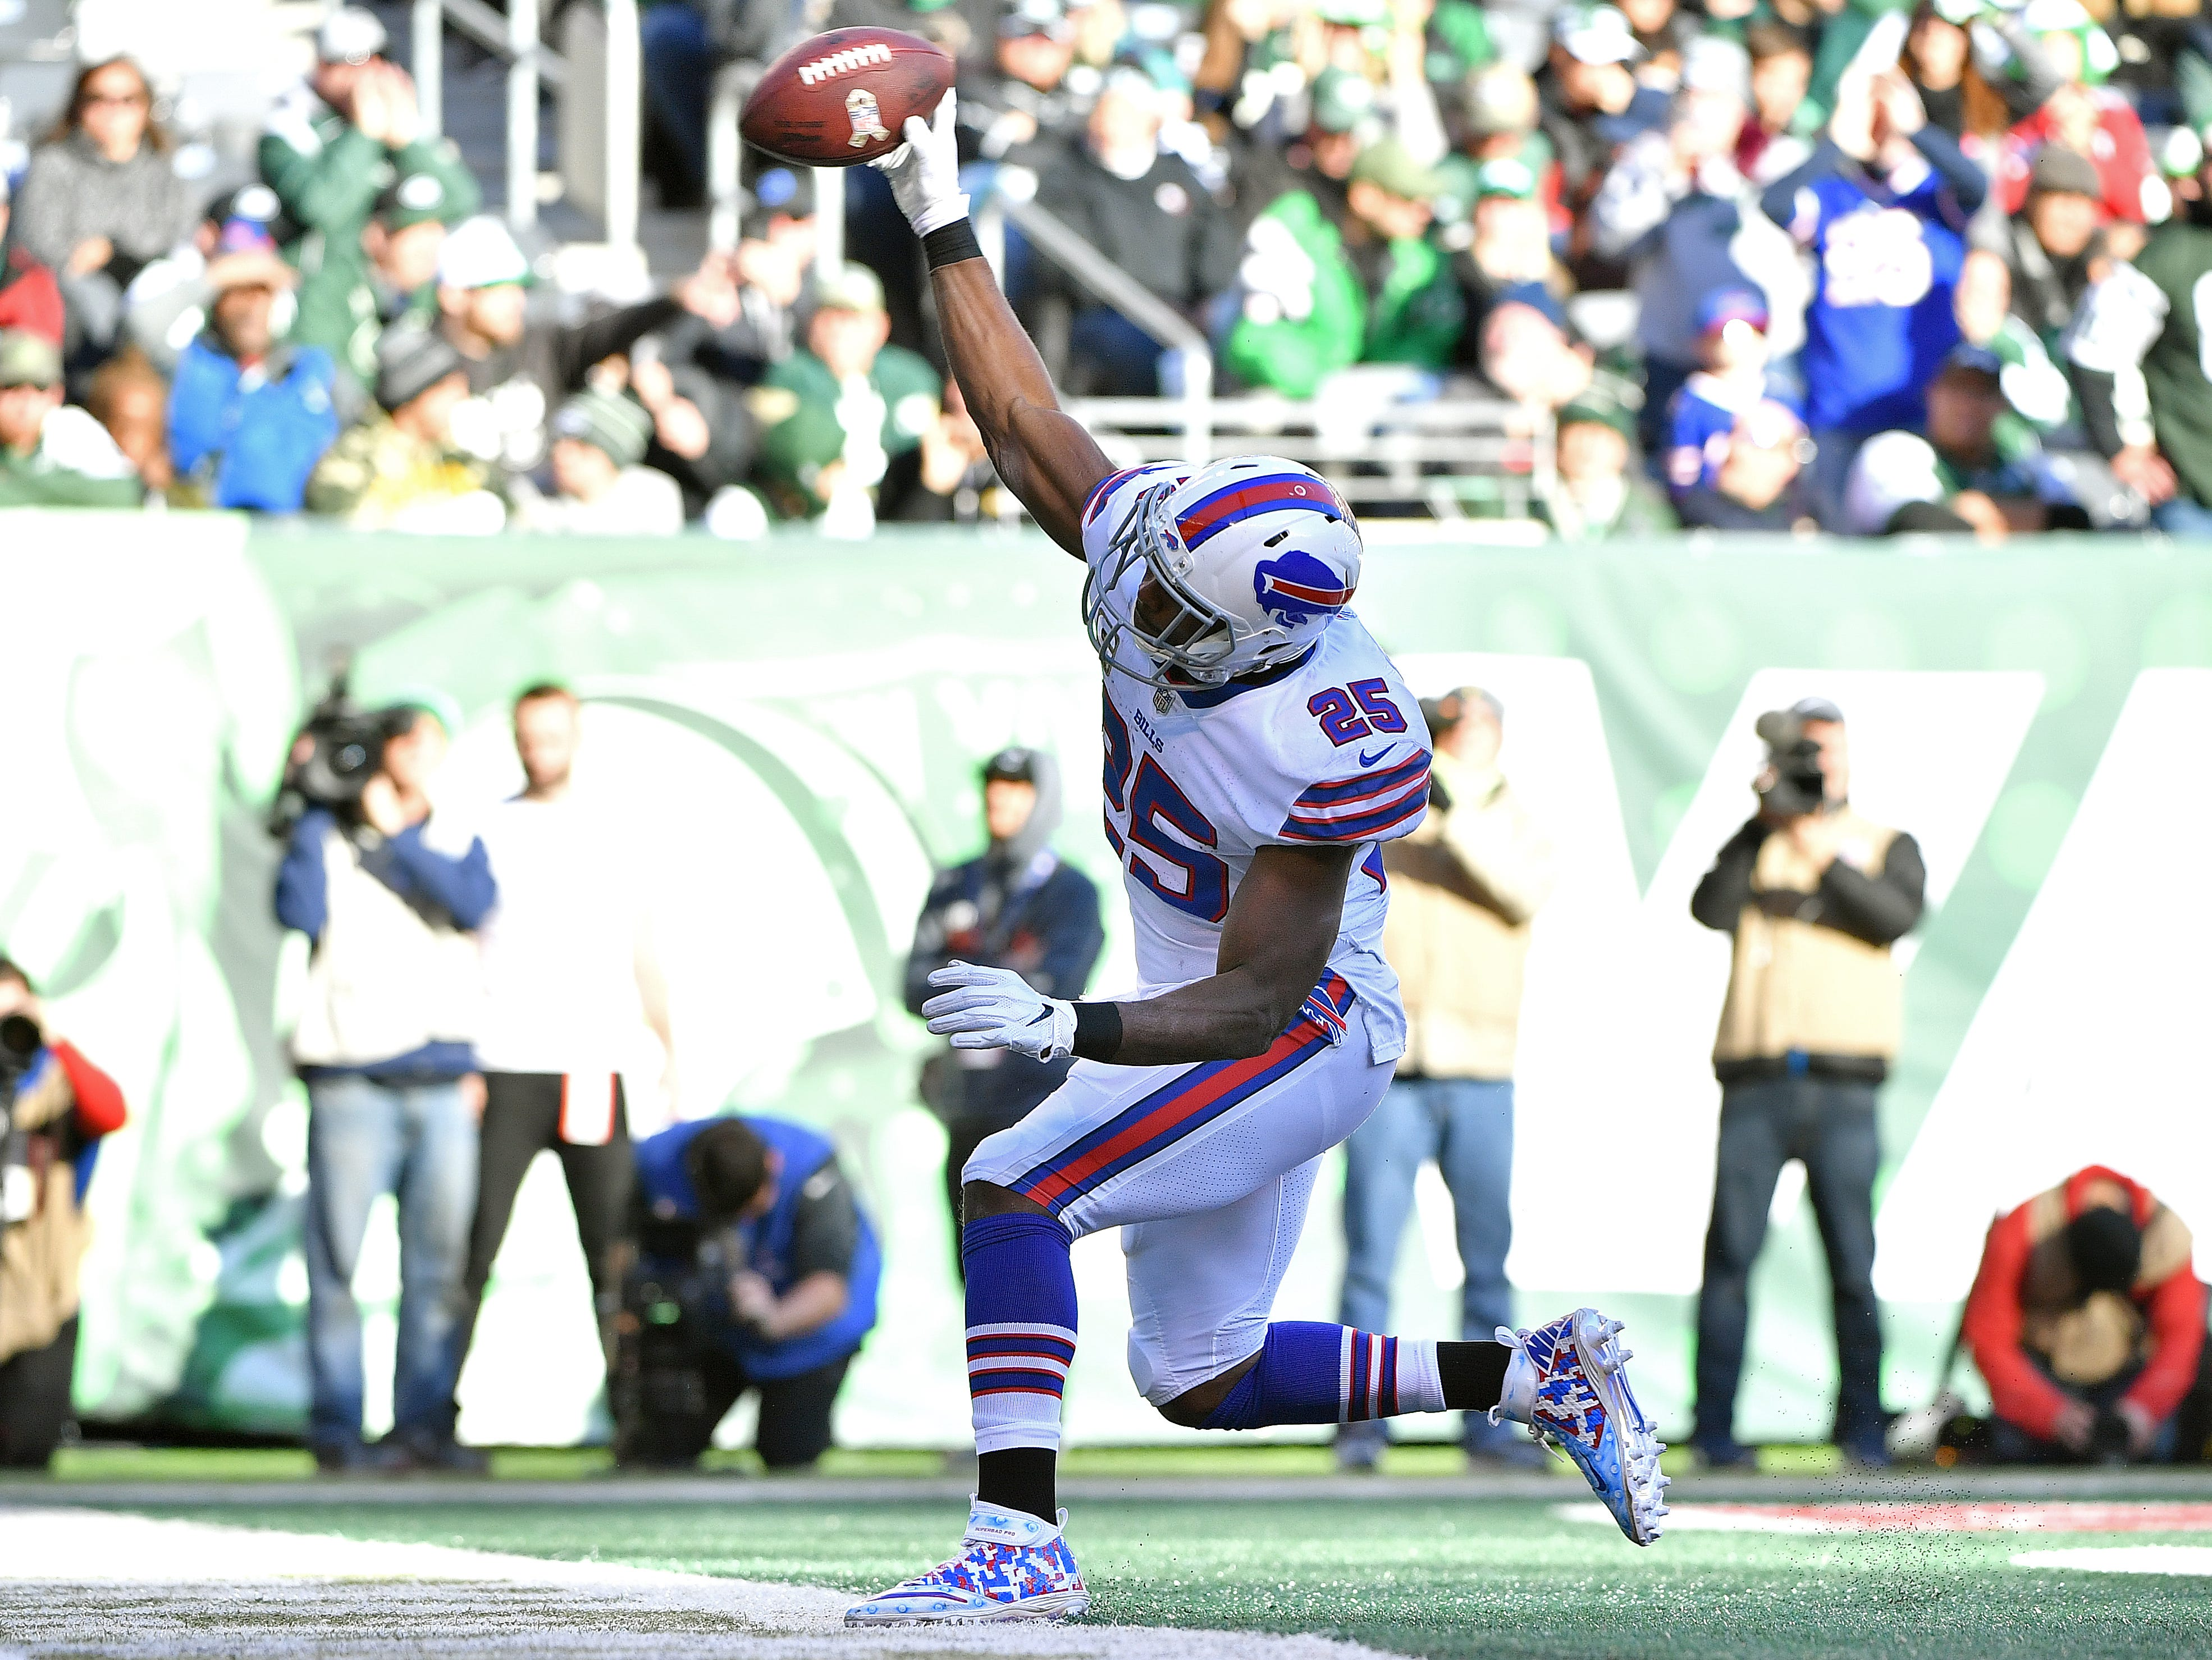 EAST RUTHERFORD, NEW JERSEY - NOVEMBER 11: LeSean McCoy #25 of the Buffalo Bills celebrates his second quarter touchdown against the New York Jets at MetLife Stadium on November 11, 2018 in East Rutherford, New Jersey. (Photo by Mark Brown/Getty Images)